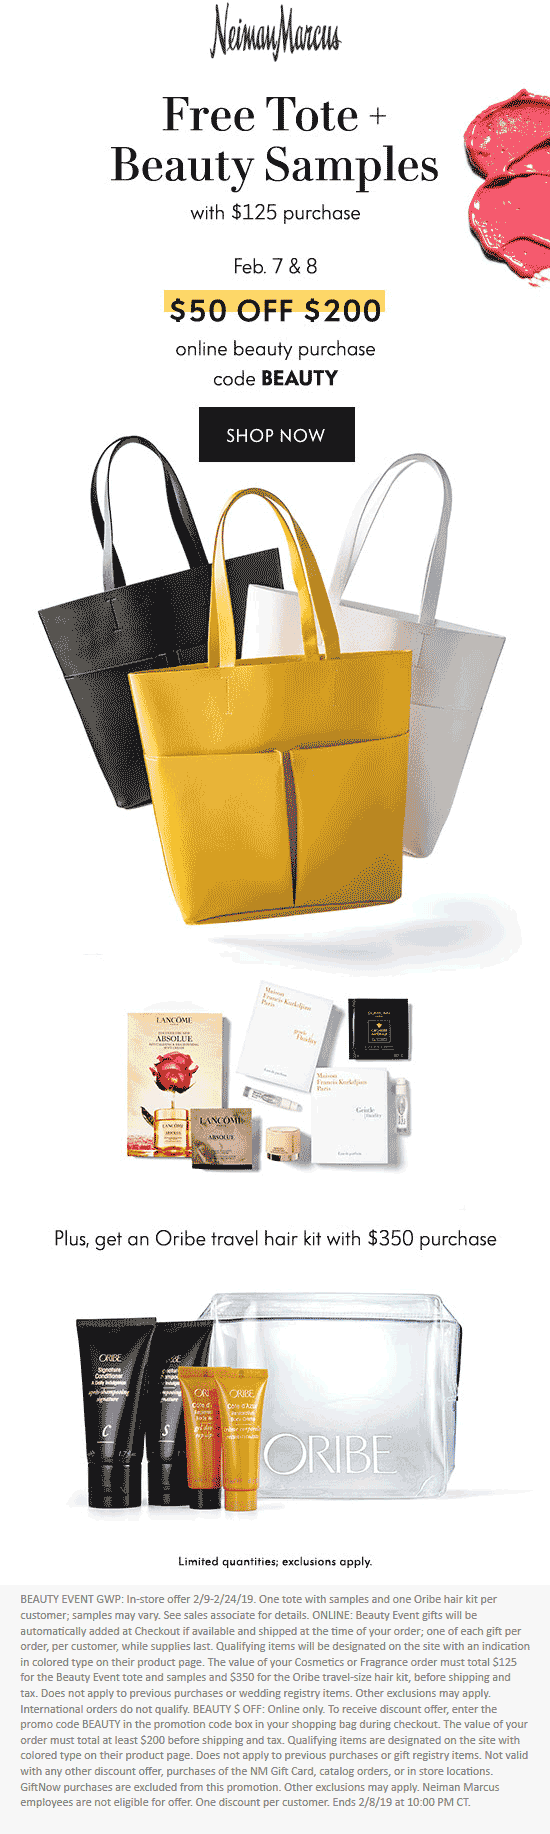 Neiman Marcus Coupon October 2019 Free tote & more at Neiman Marcus, or online via promo code BEAUTY